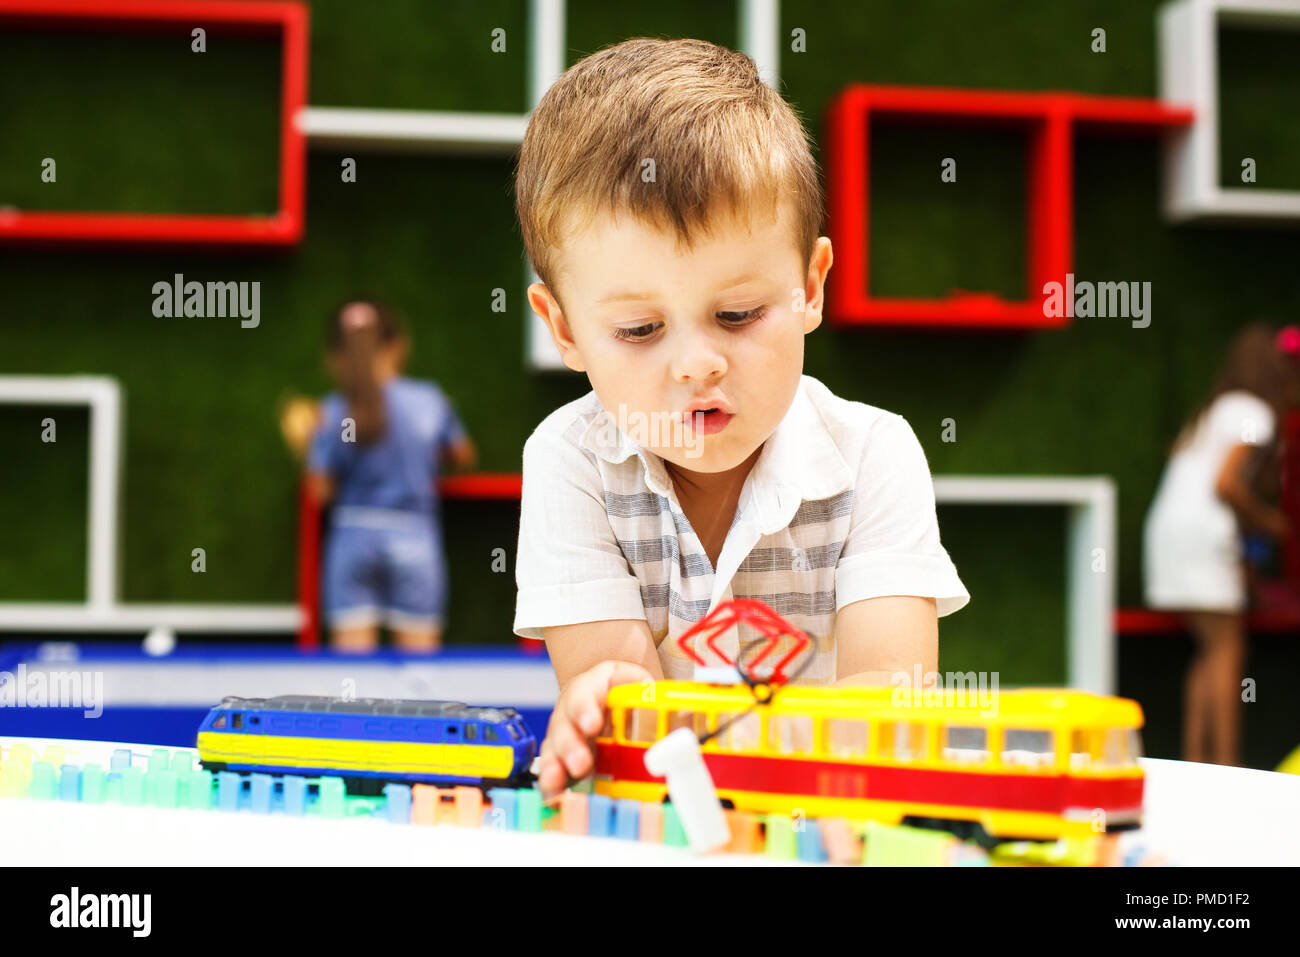 Cute Boy Playing With Tram Developing Toys Transportation Toys For